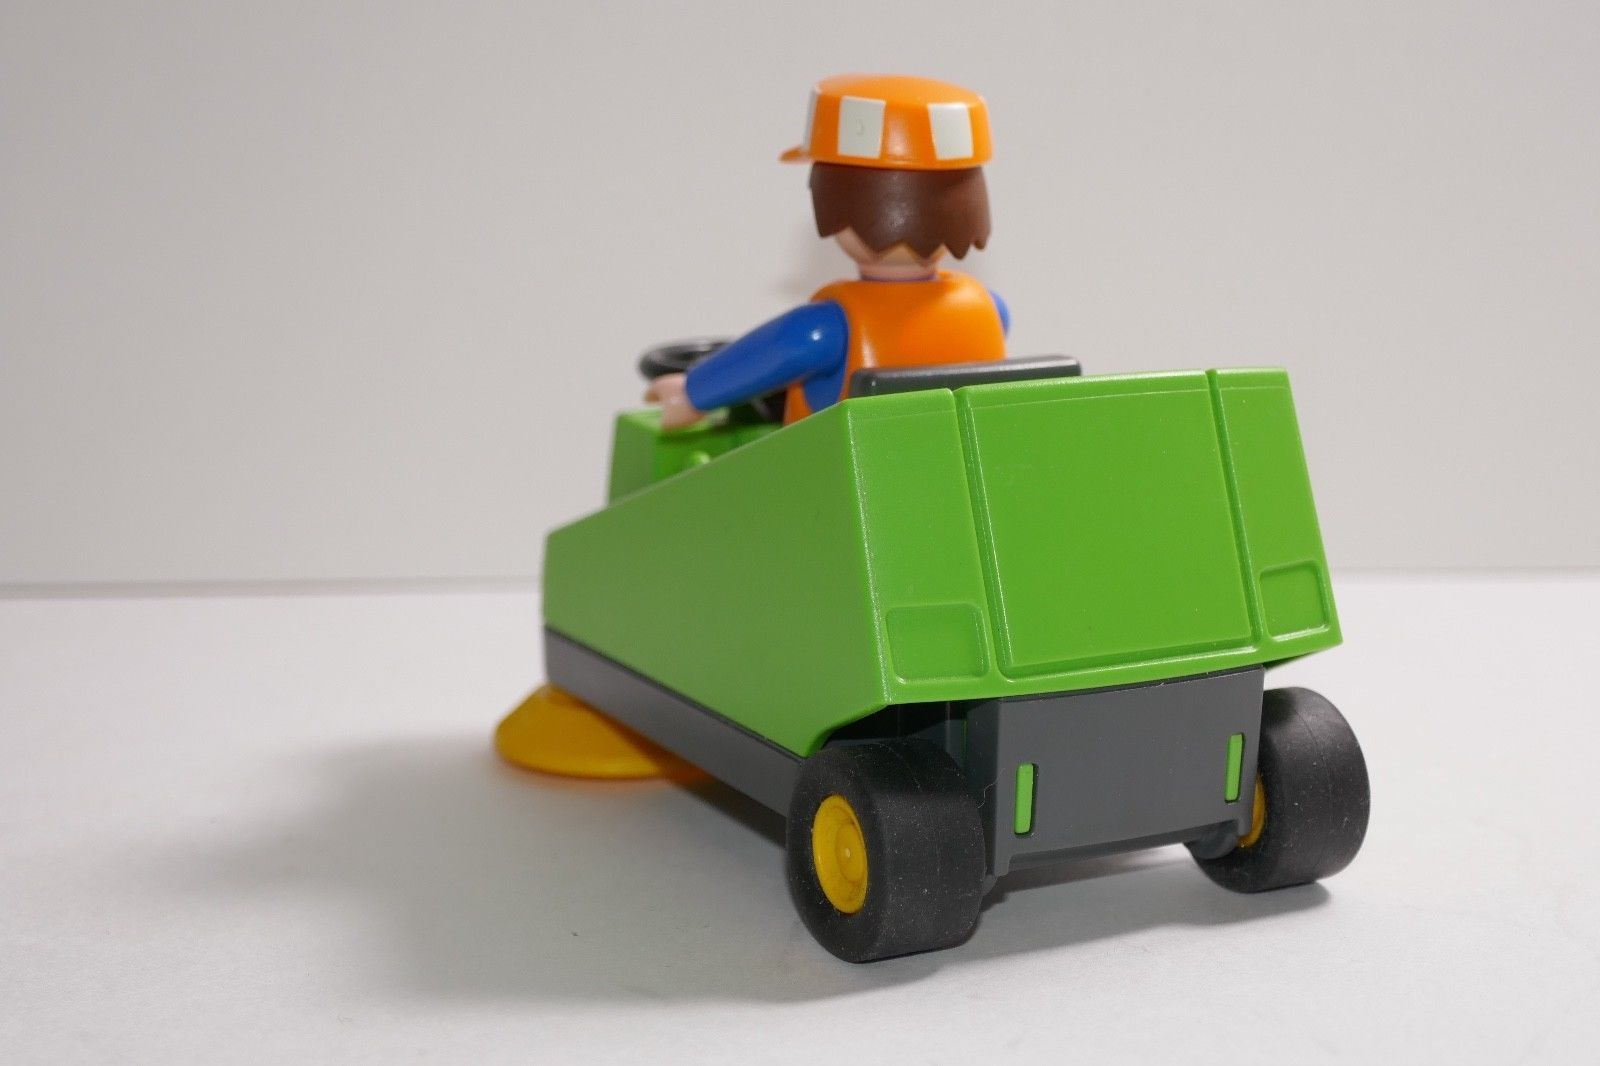 Playmobil Recycling Street Sweeper Cleaner #3790